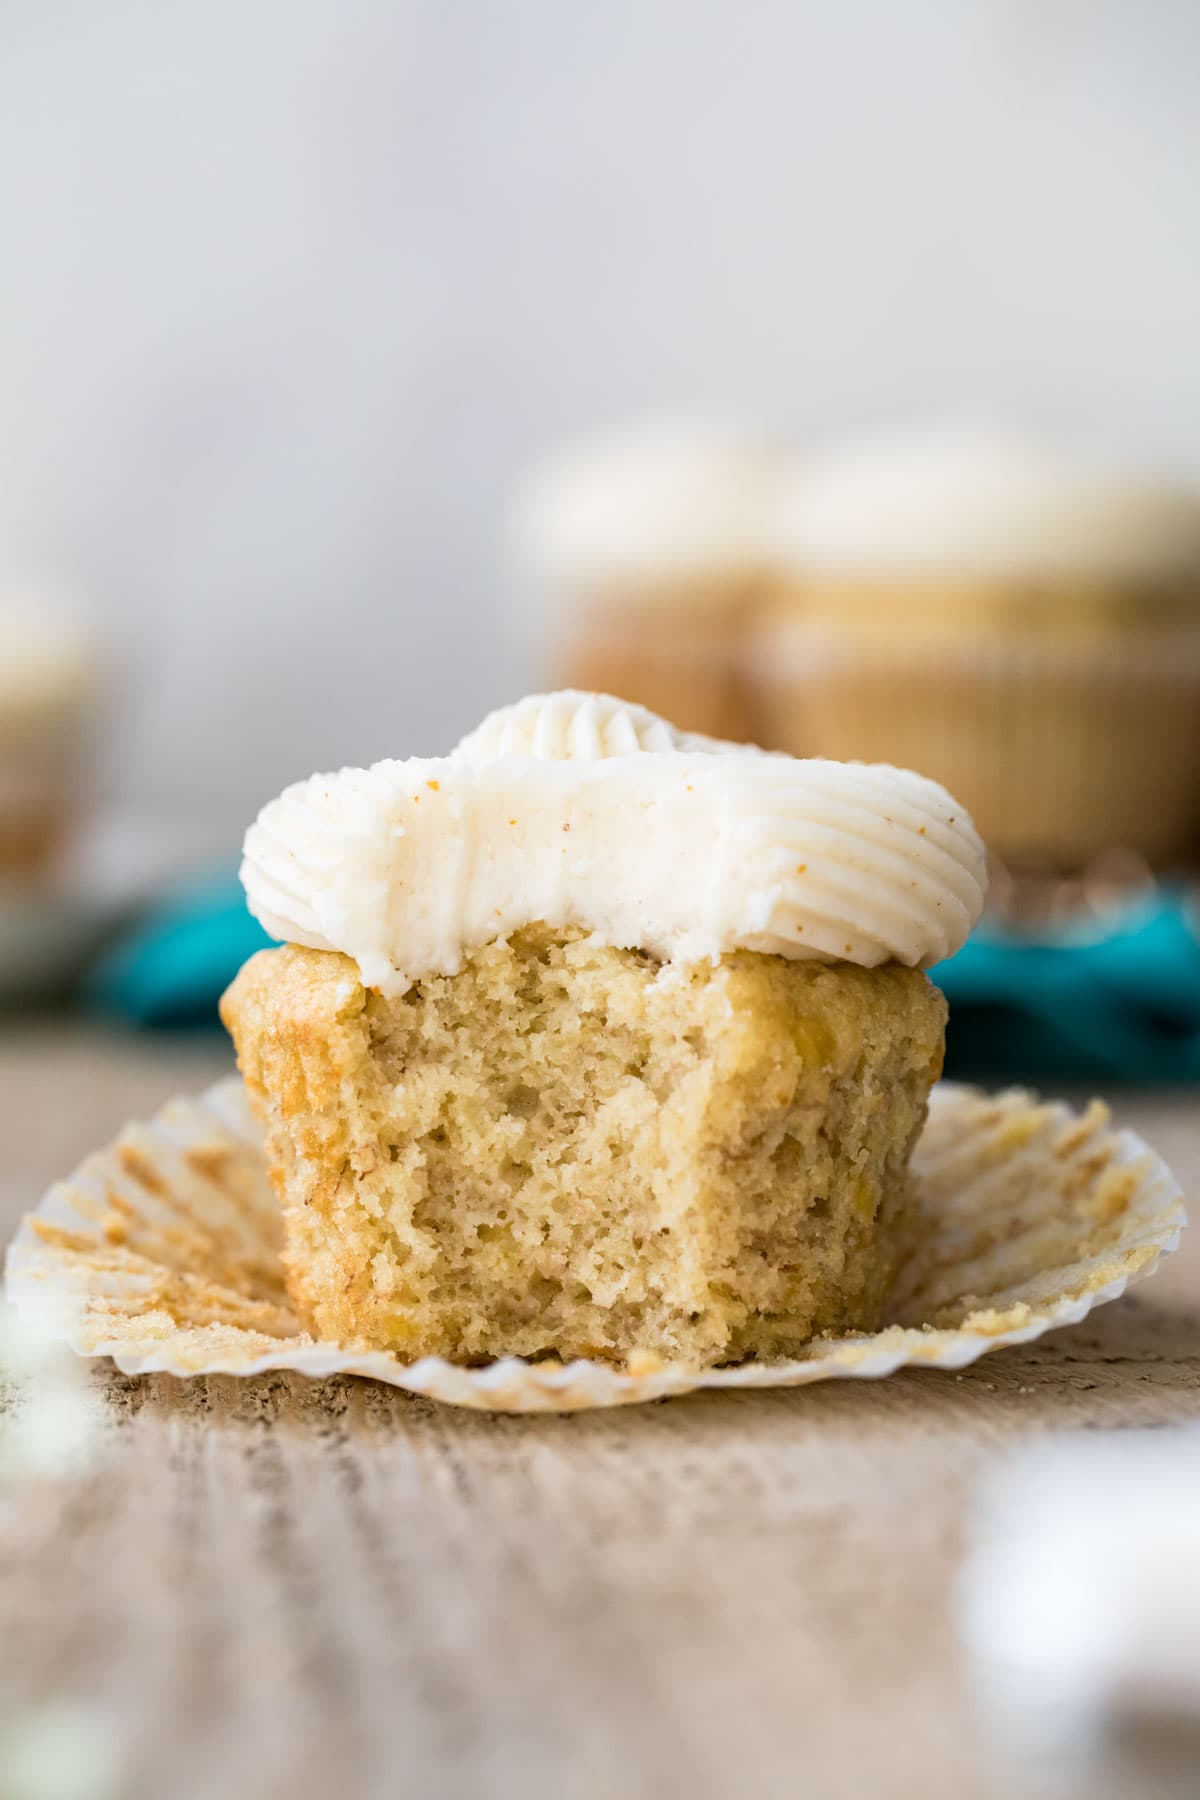 Cupcake with bite taken out of it